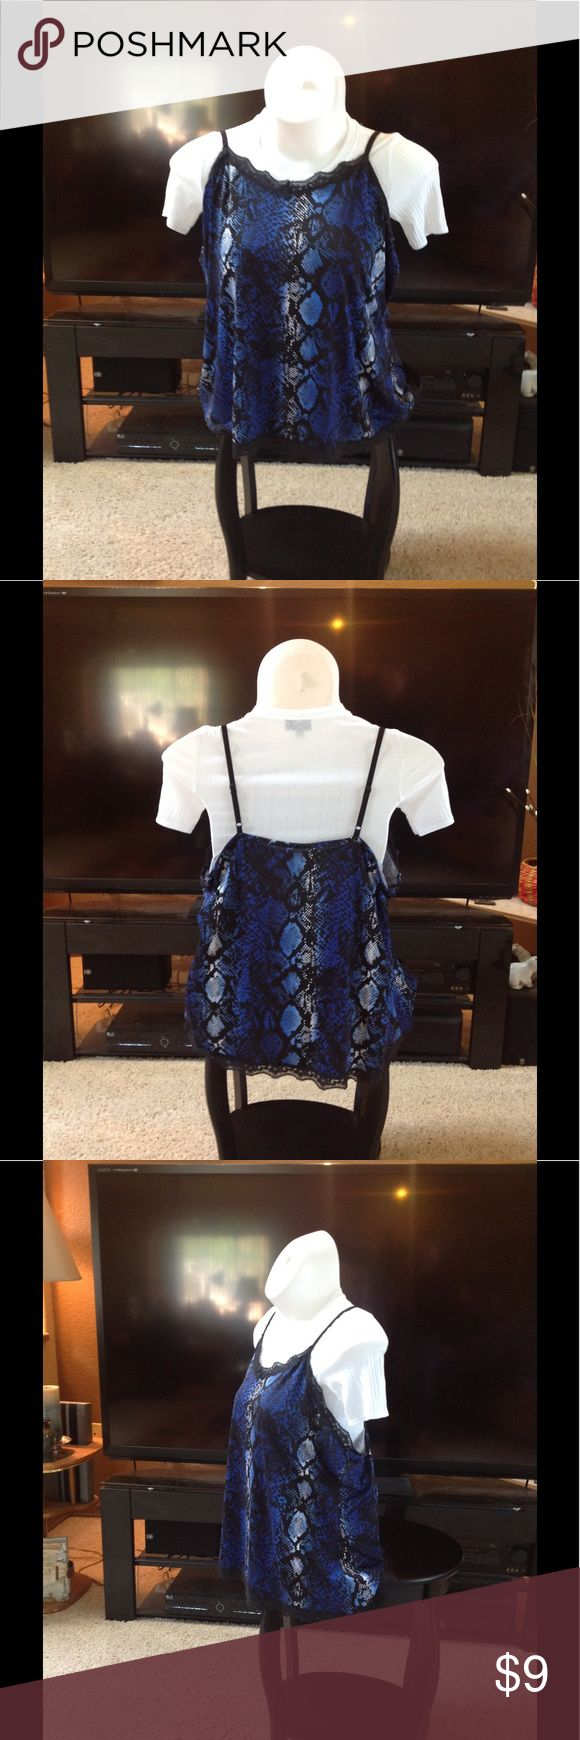 Black blue and white spaghetti strap tank Black blue and white animal print women's tank top. Spaghetti straps and black lace around the top and bottom. Made of 92% polyester 8% spandex. Runs a little short Fashion Bug Tops Tank Tops